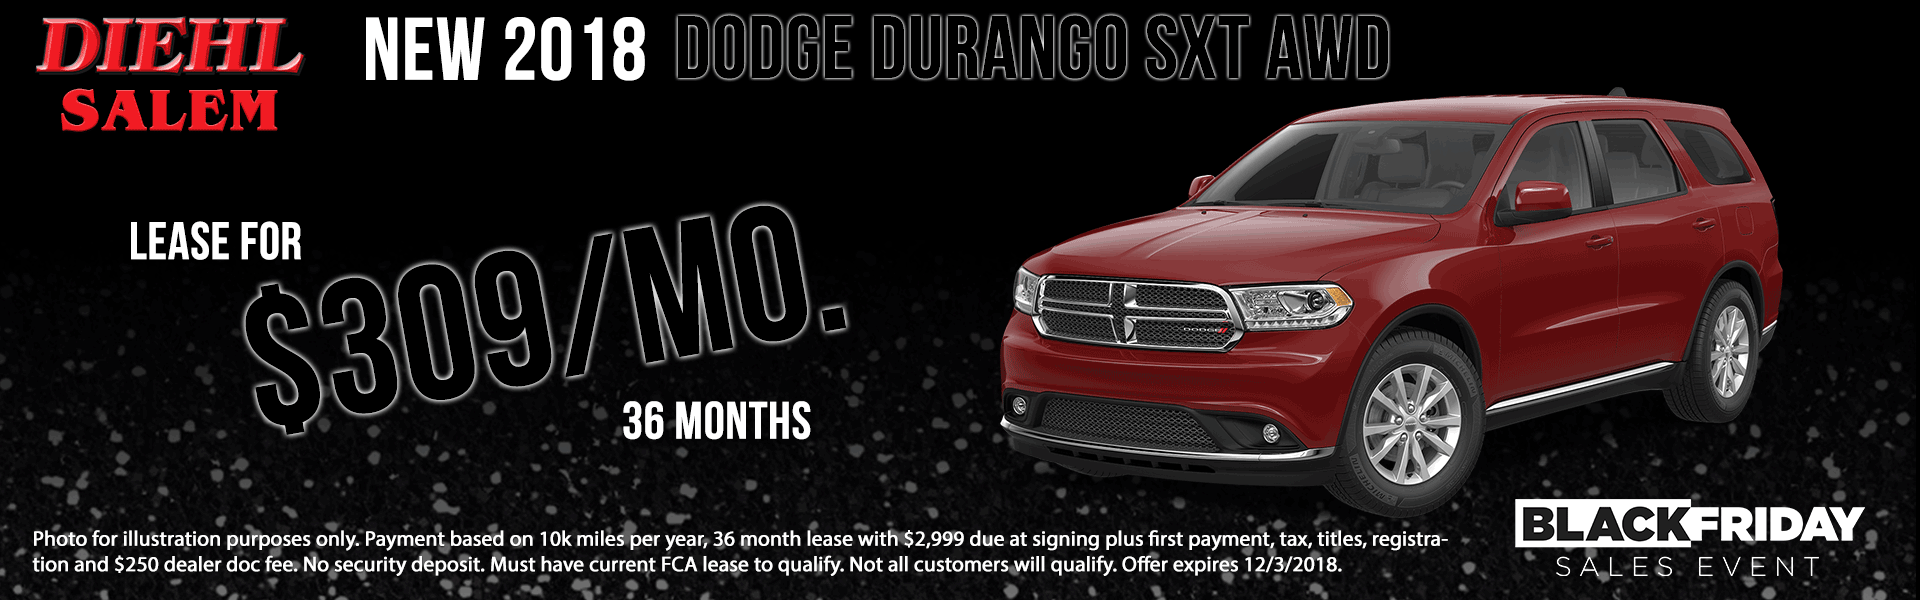 Diehl of Salem ohio chrysler jeep dodge ram new and used sales, service, parts, accessories, monthly specials NEW 2018 DODGE DURANGO SXT PLUS AWD